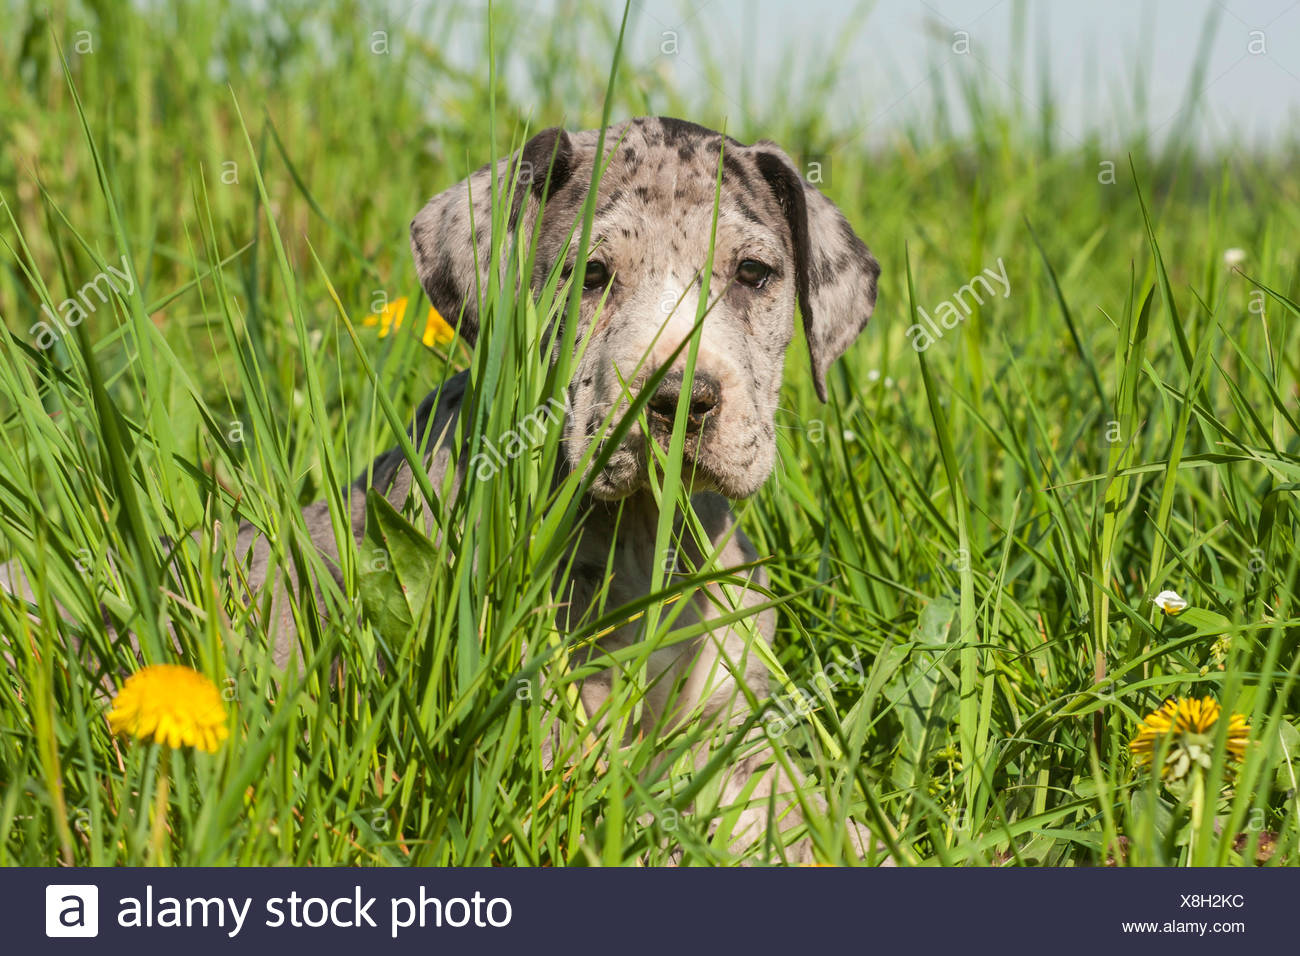 Great Dane, puppy, spotted - Stock Image